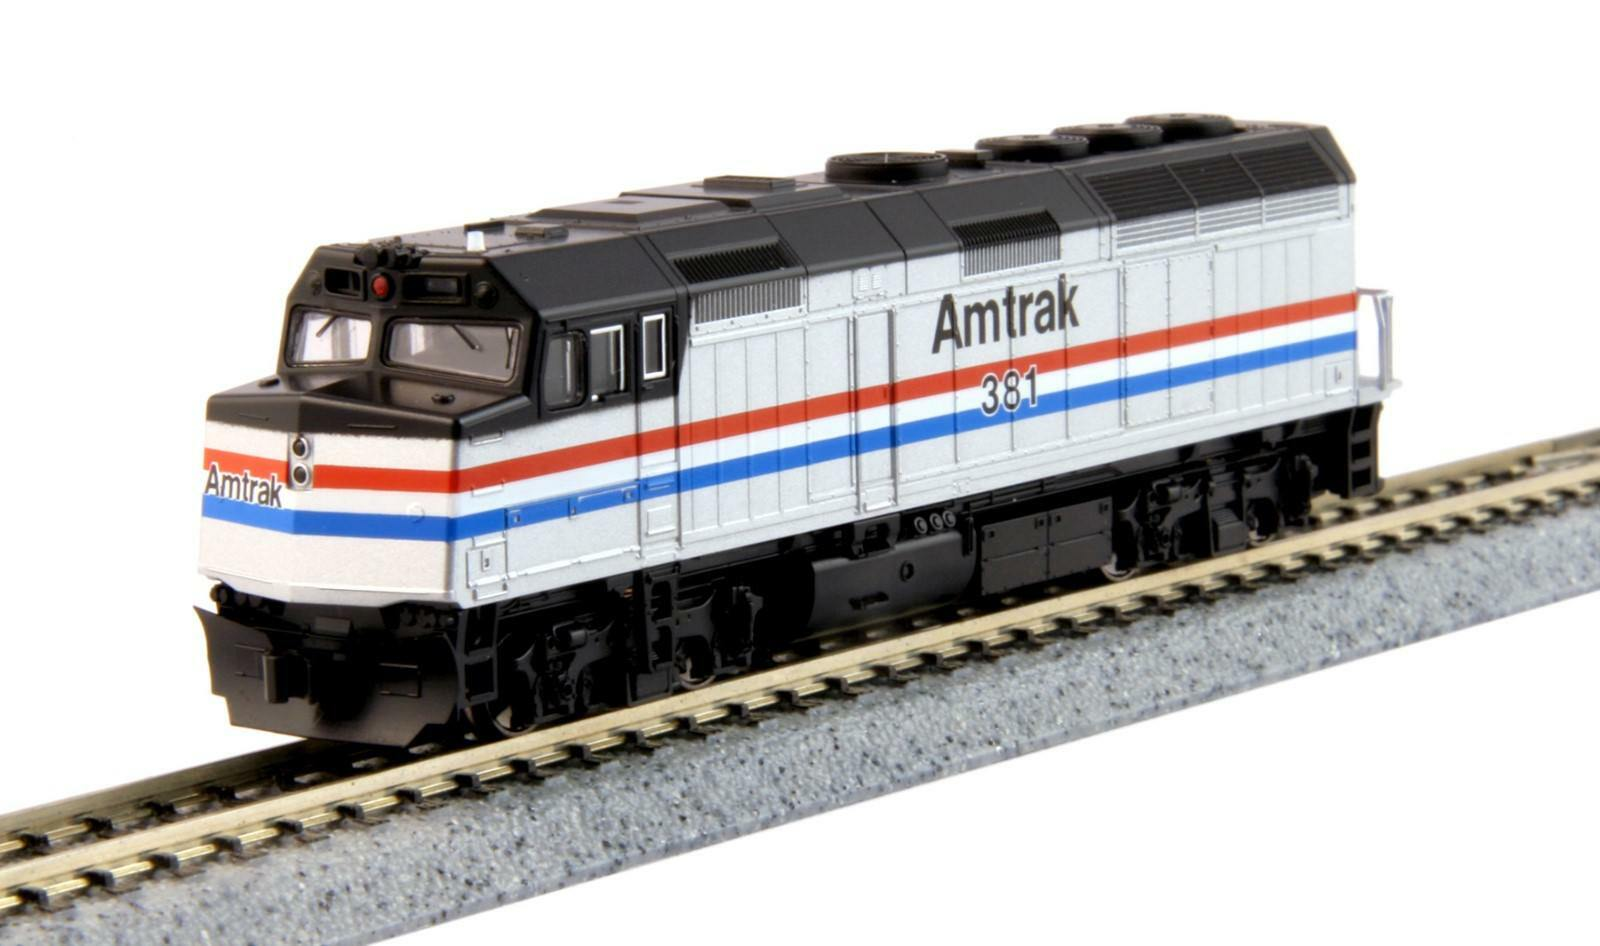 Kato N 176-6107 EMD F40PH (As Built) Amtrak Phase III Road DCC Ready New